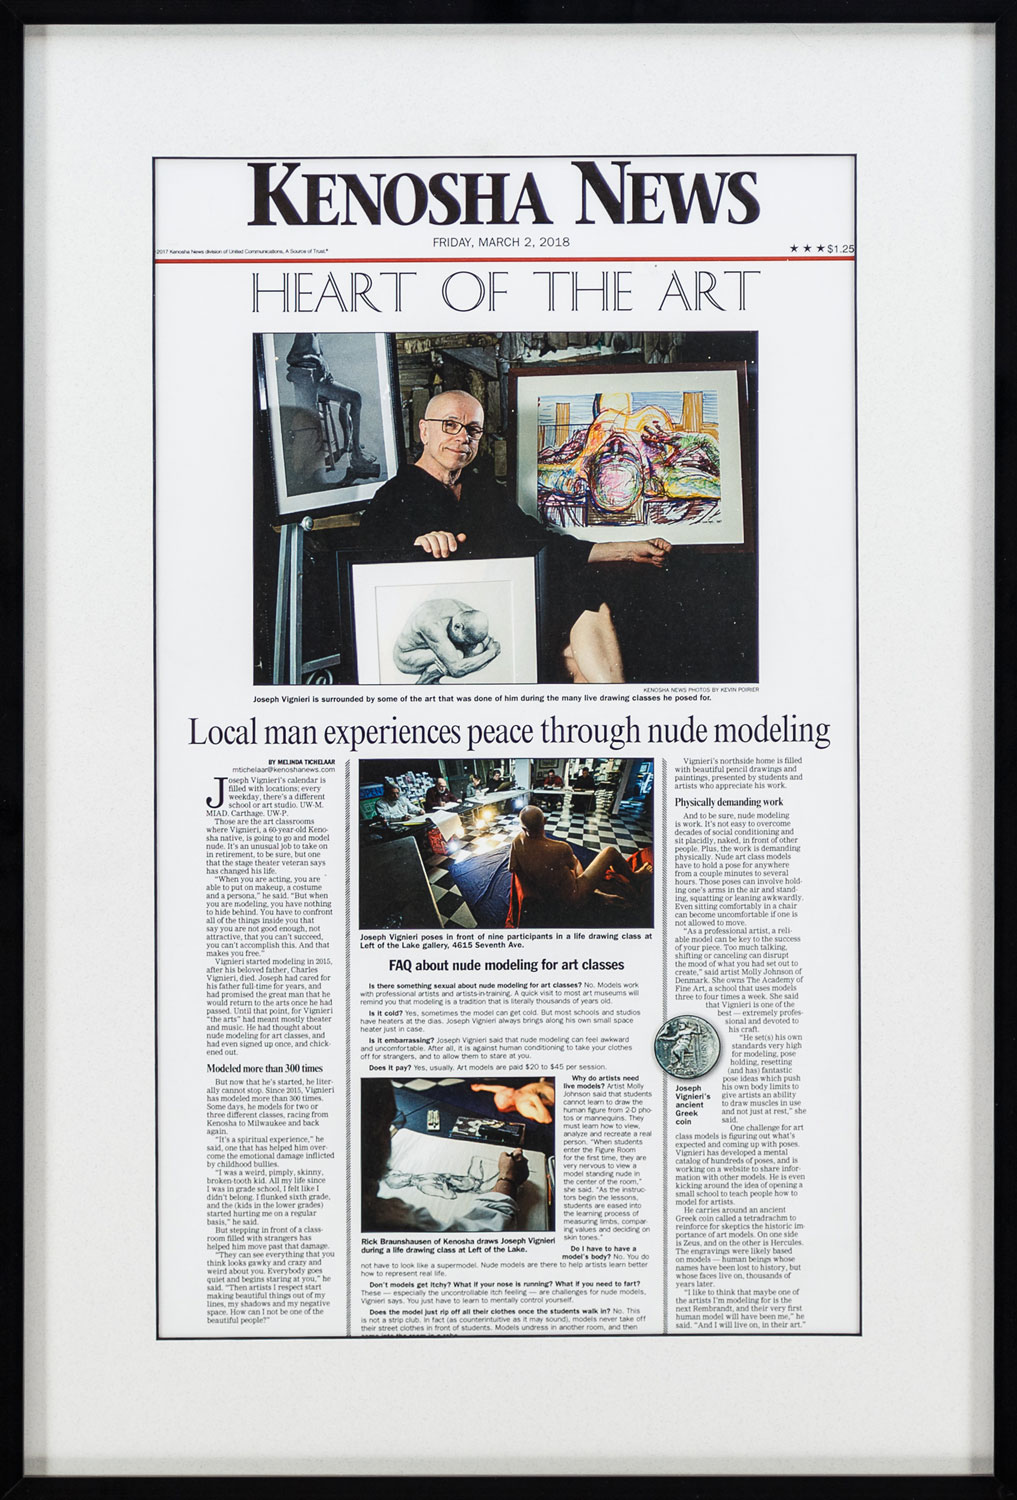 """Heart of the Art"" by Melinda Tichelaar, Photographer: Kevin Poirier • Kenosha News • 8/2/18 • Newspaper Article"